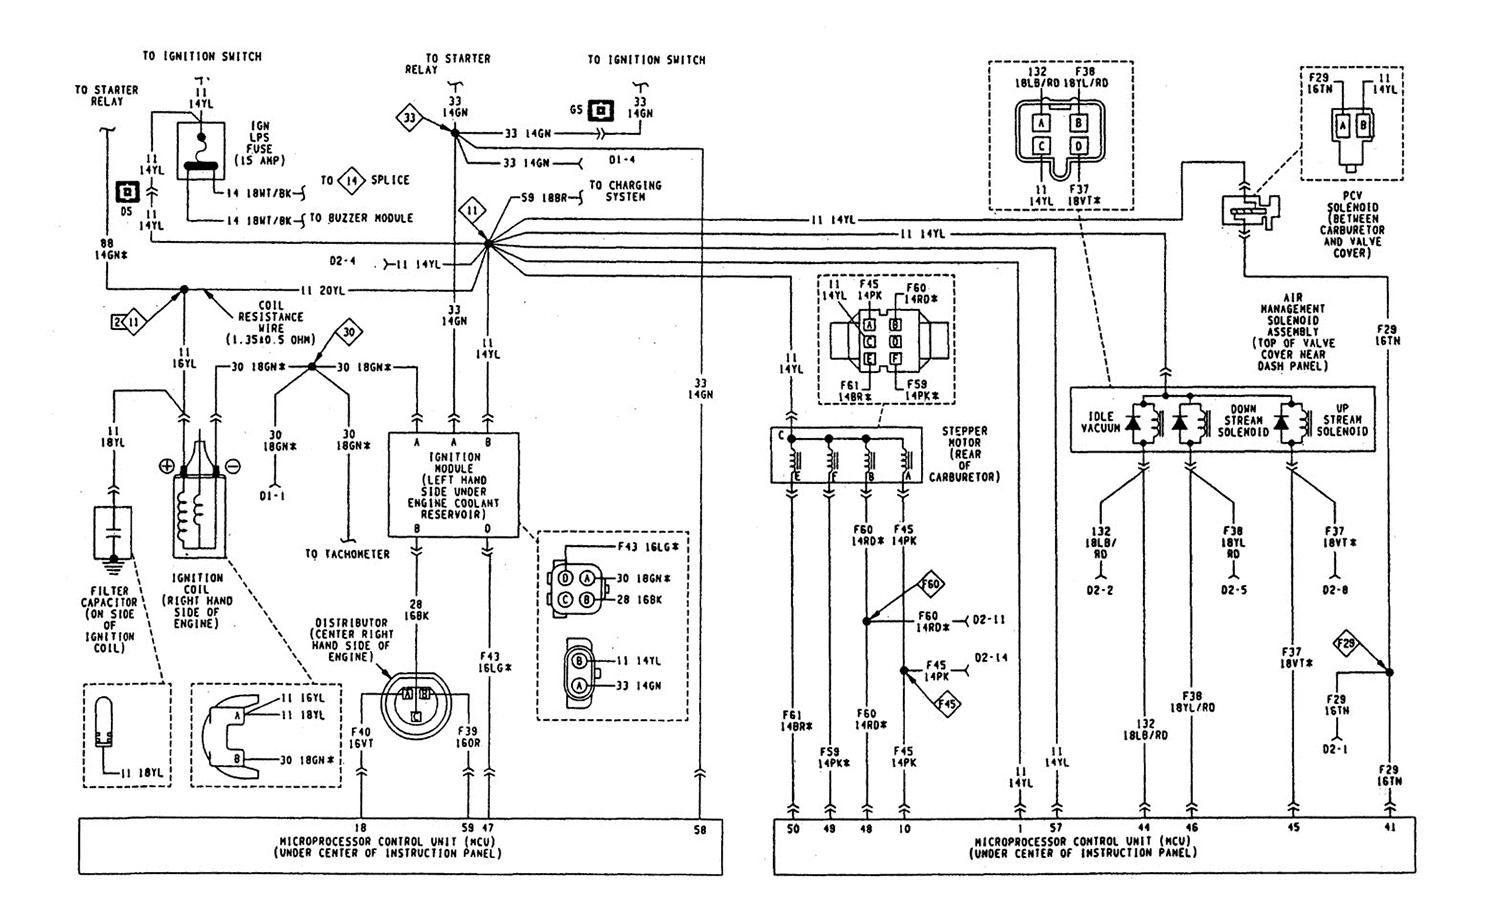 02 wrangler wiring diagram - fusebox and wiring diagram device-heal -  device-heal.ixorto.it  ixorto.it